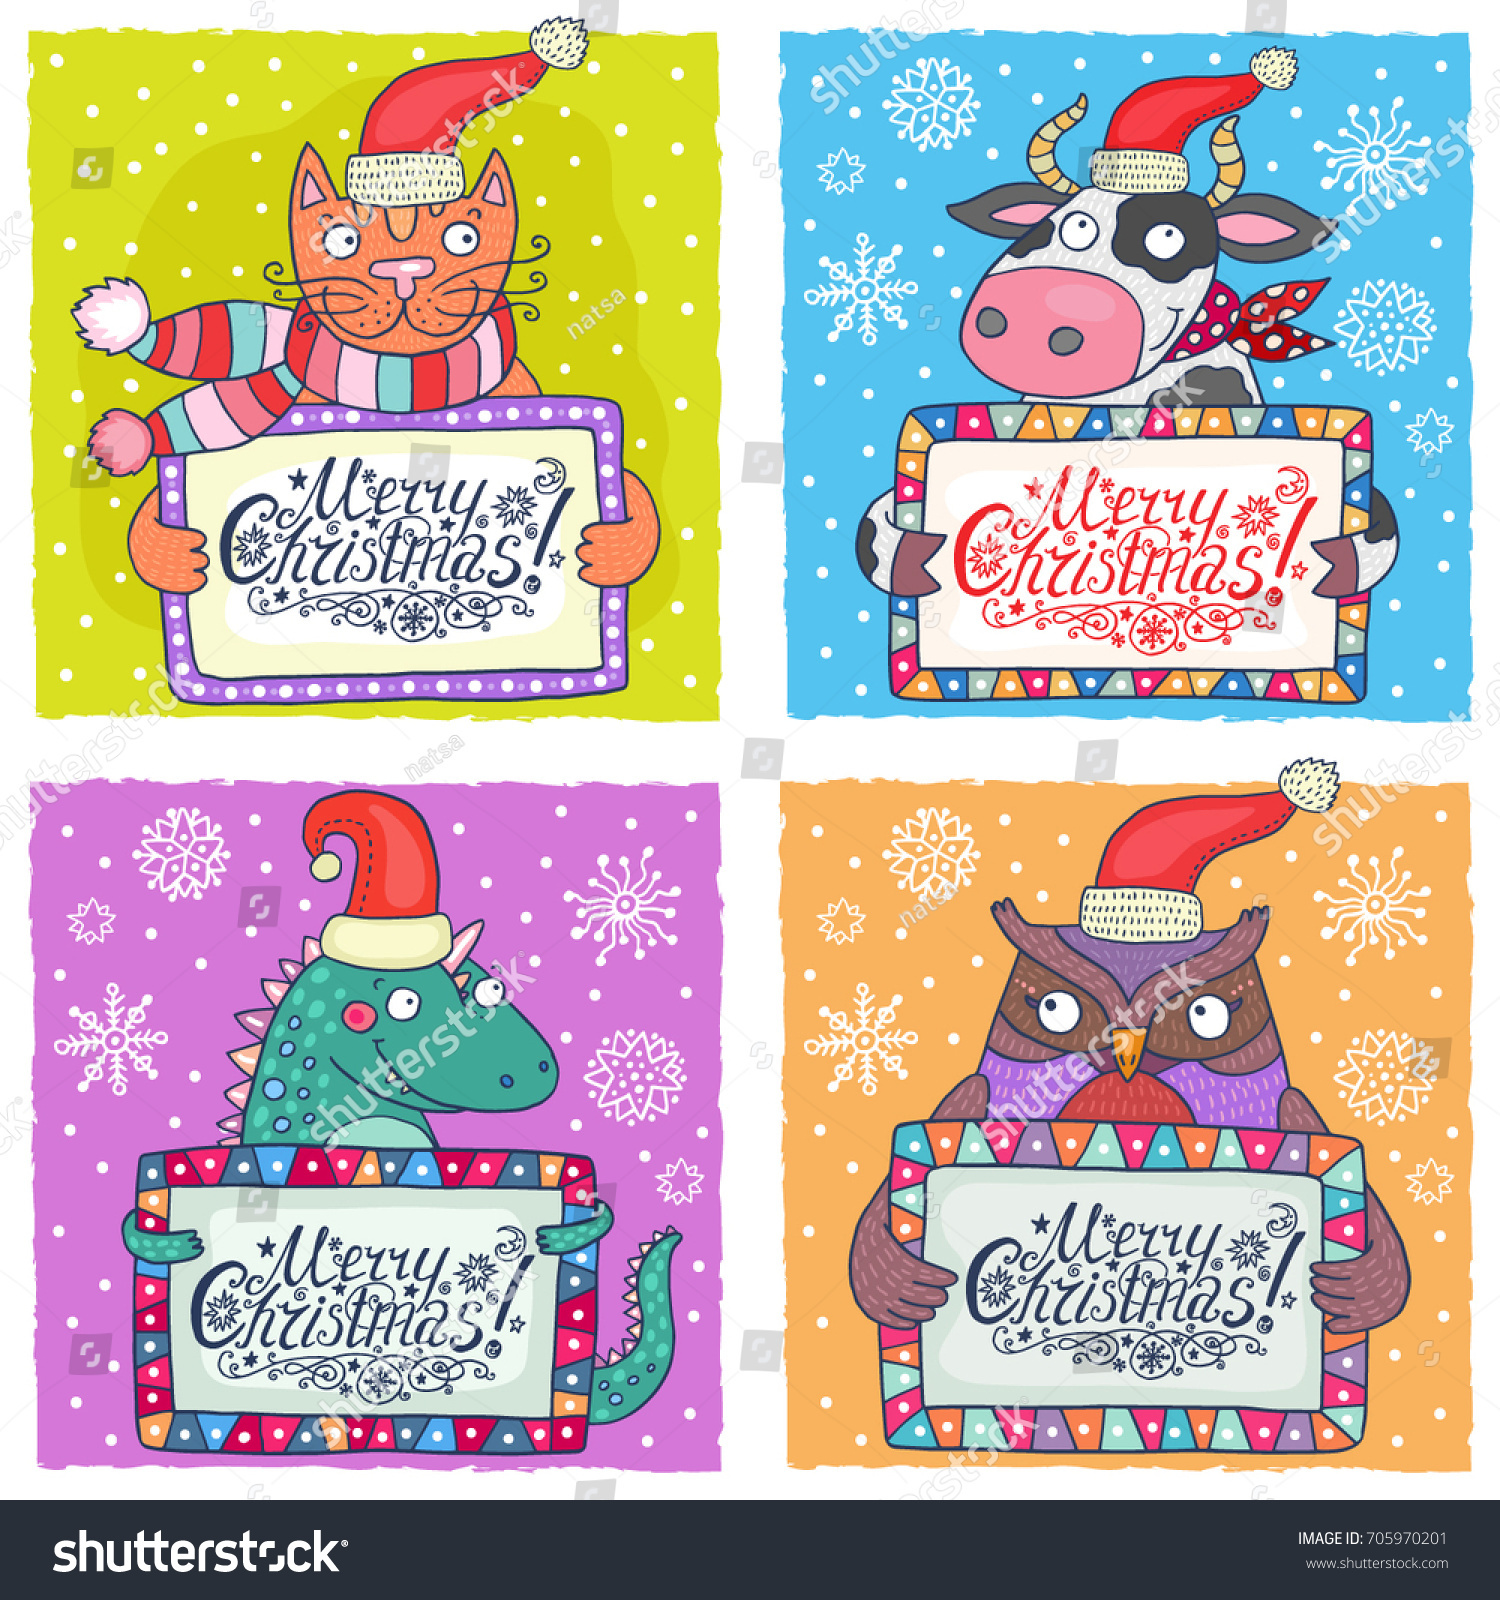 Set 4 Cute Christmas Cards Templates Stock Vector (Royalty Free ...